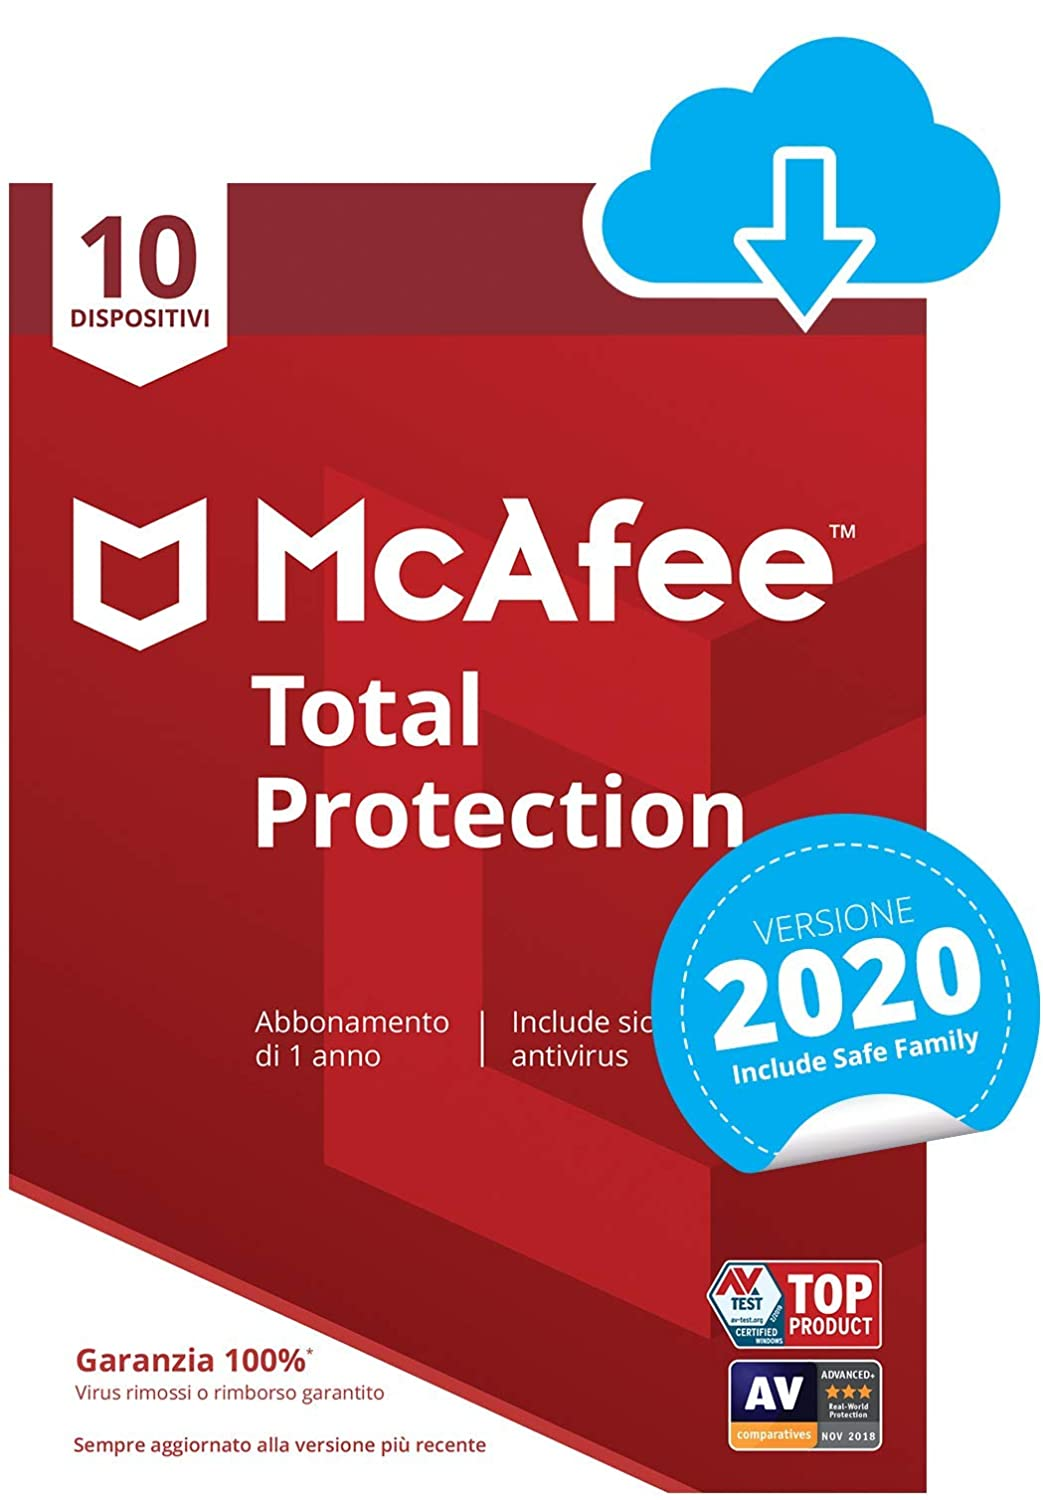 McAfee Total Protection 2020 | 10 Dispositivi | 1 Anno | PC/Mac/Smartphone/Tablet | Codice d'attivazione via email